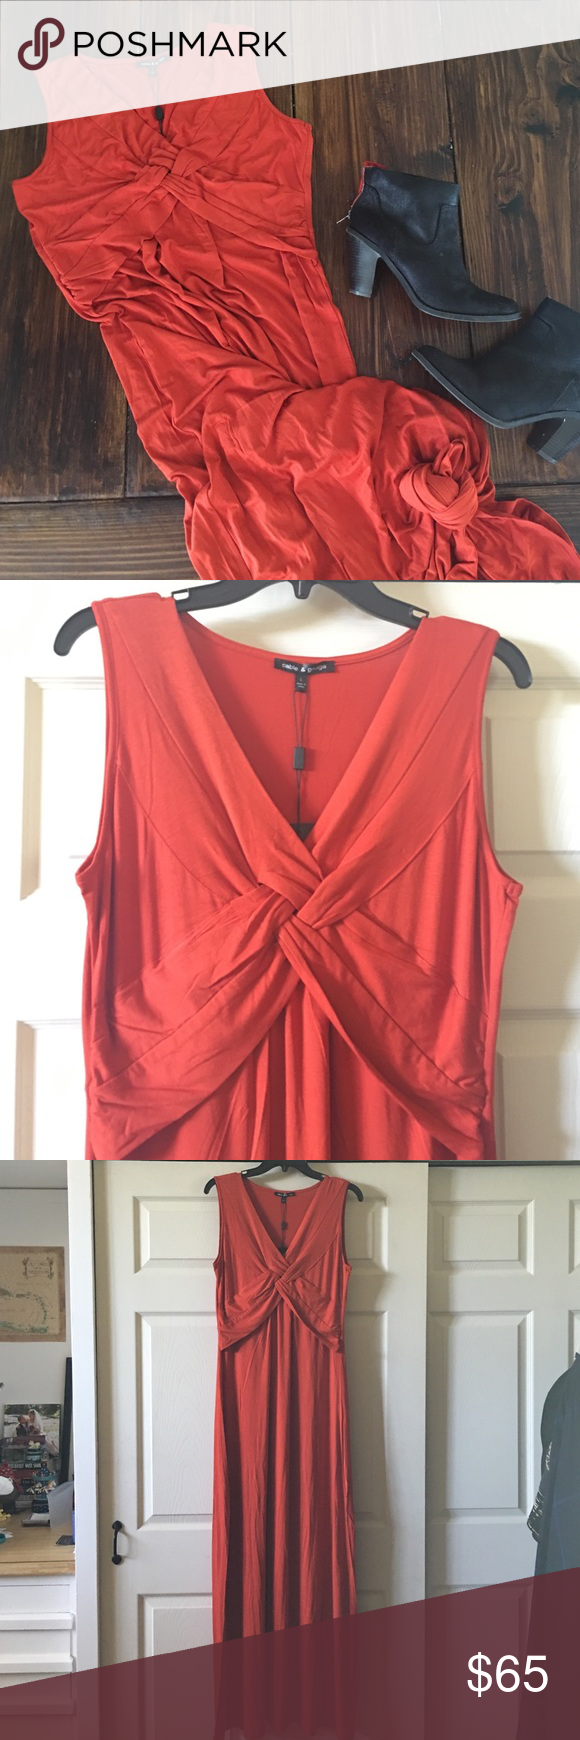 Cable & Gauge maxi dress Cable & Gauge maxi dress. Size large. New with tags. So soft and stretchy. Beautiful burnt orange color is perfect for fall. Cross cross woven design at chest. So cute under a suede biker jacket! Cable & Gauge Dresses Maxi